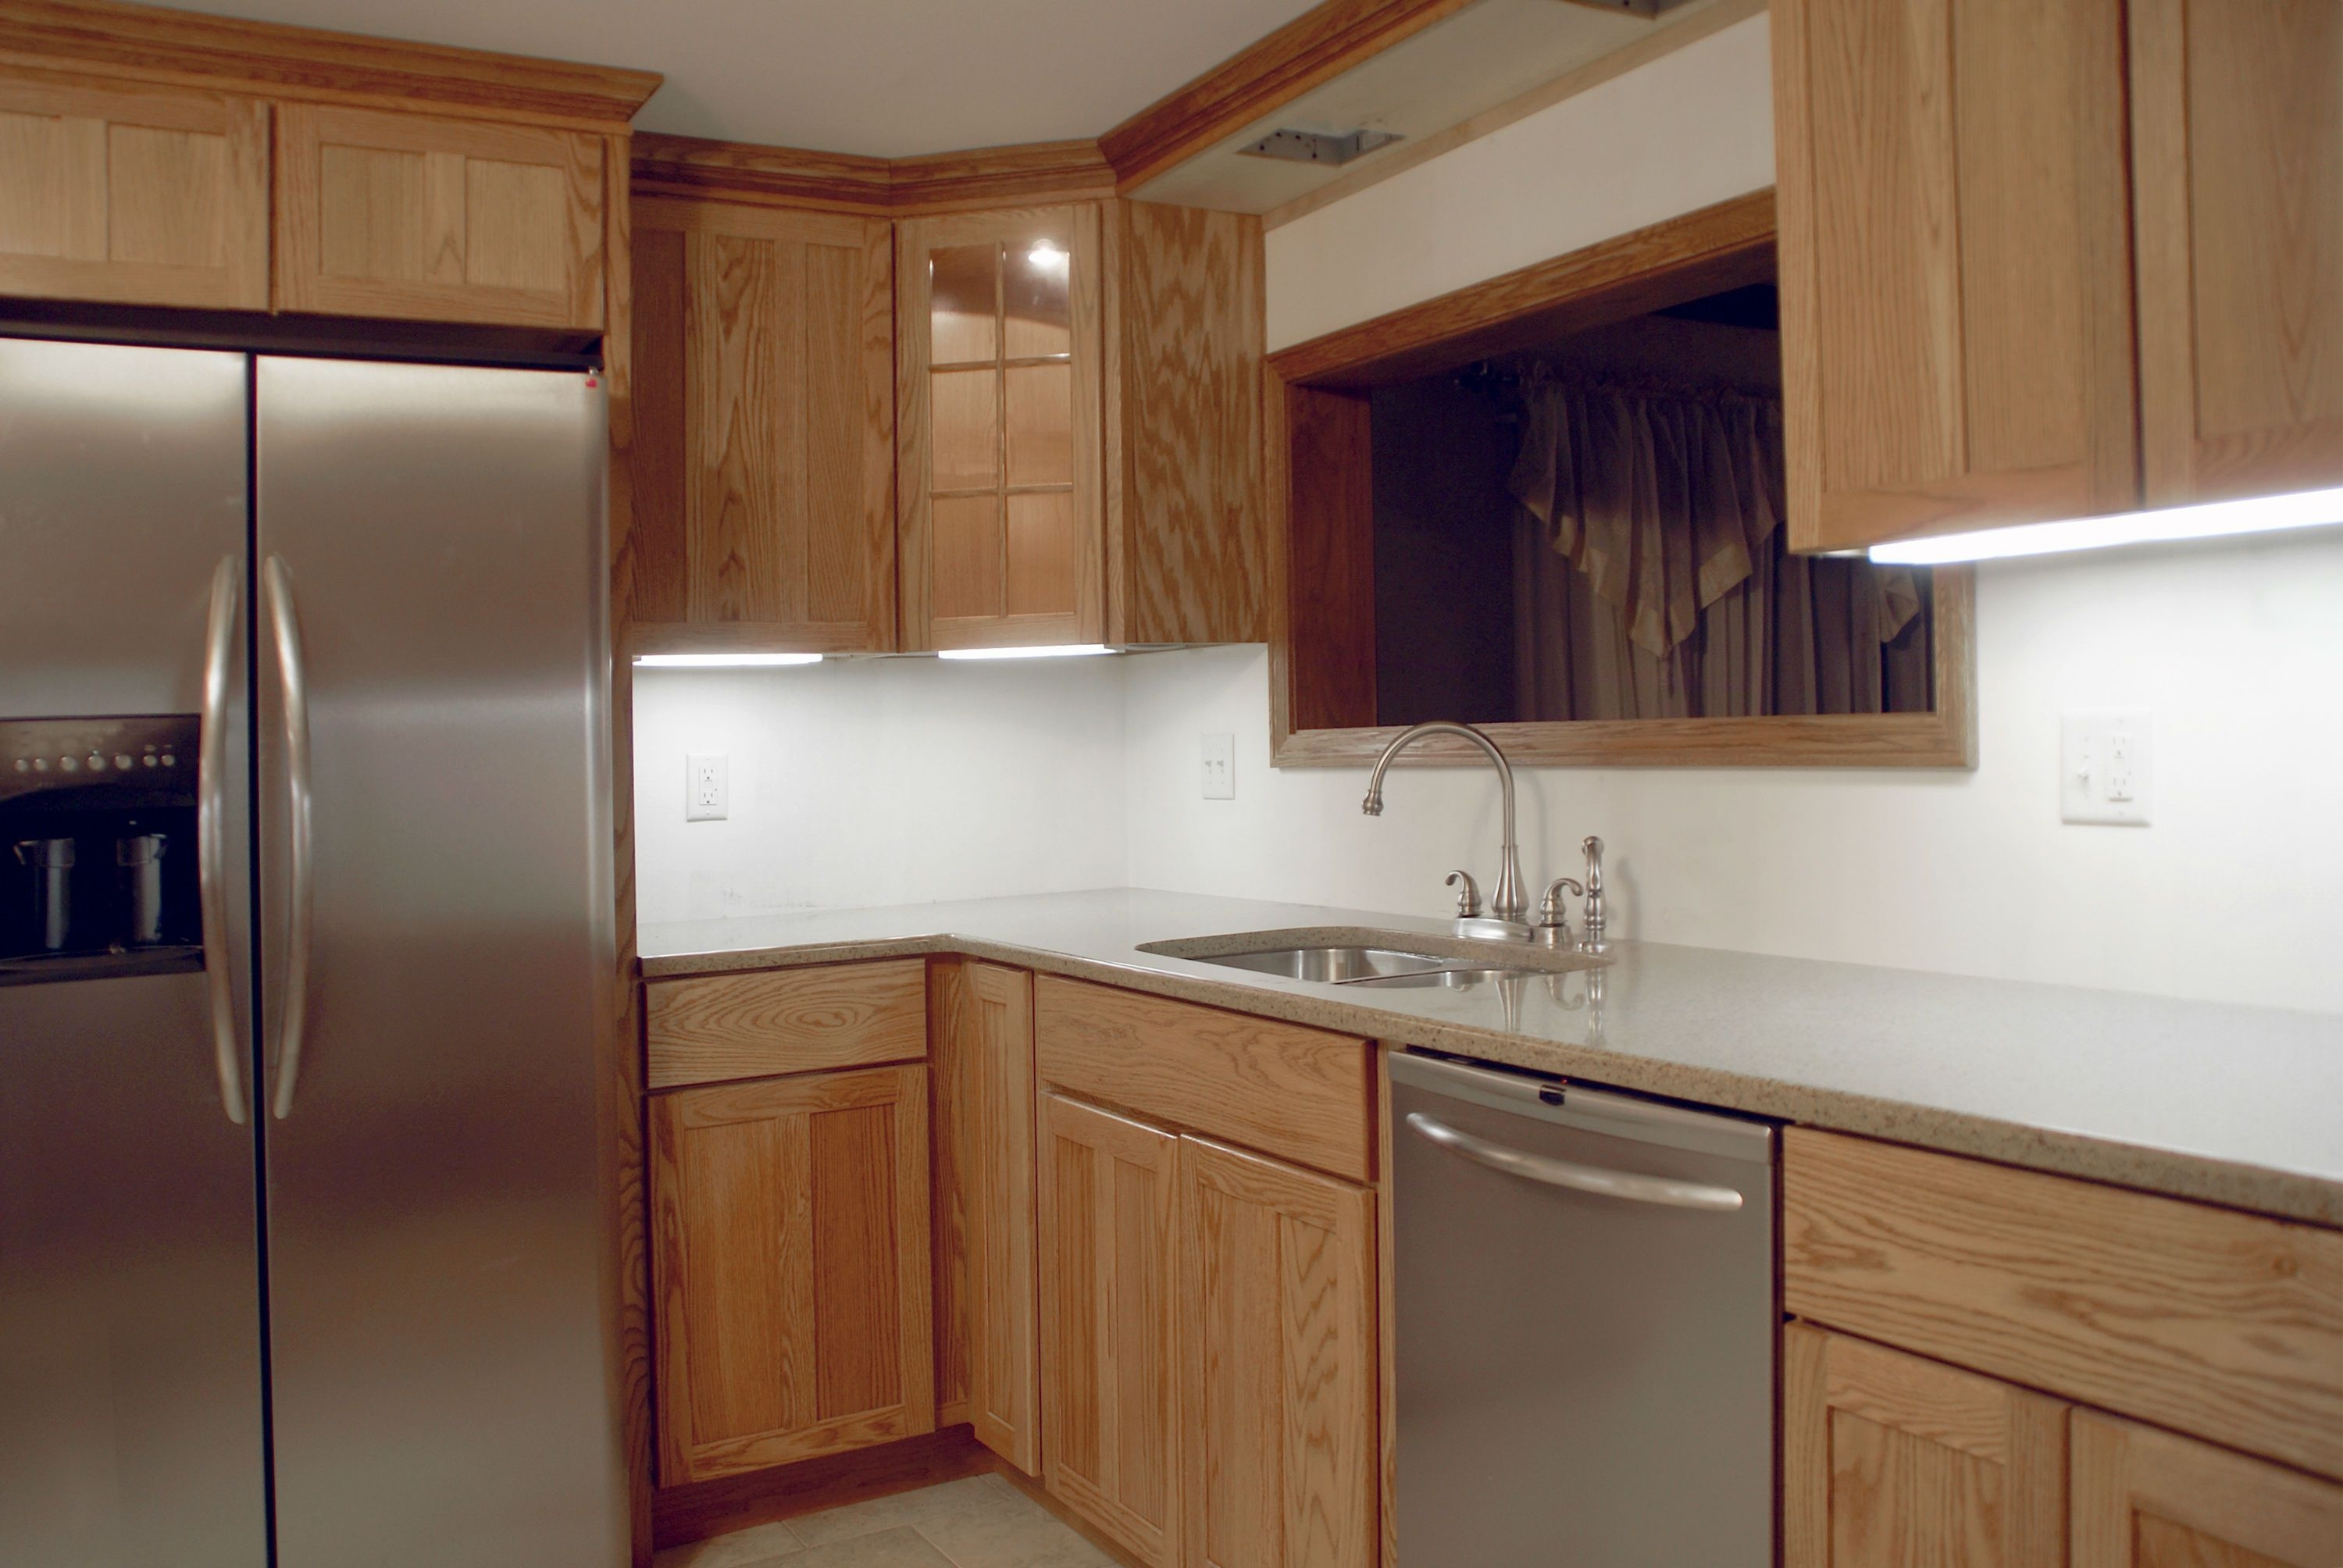 Short Kitchen Wall Cabinets